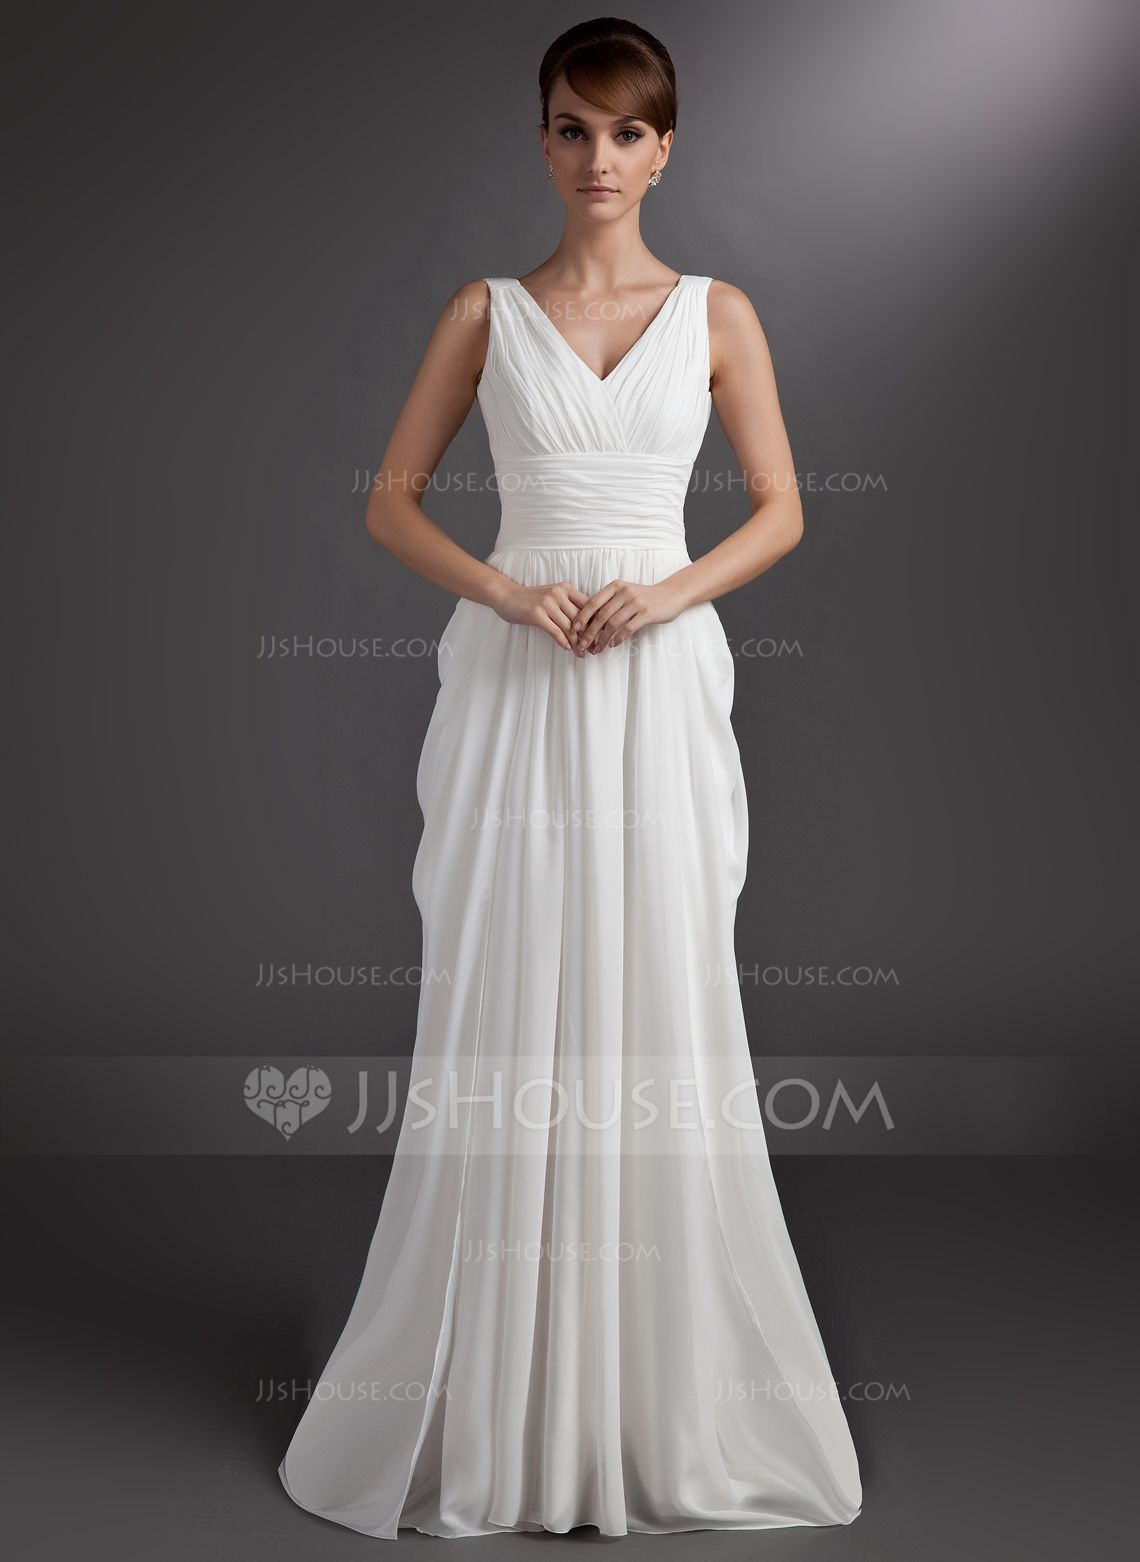 Wedding dresses v neck  ALinePrincess Vneck Court Train Chiffon Wedding Dress With Ruffle